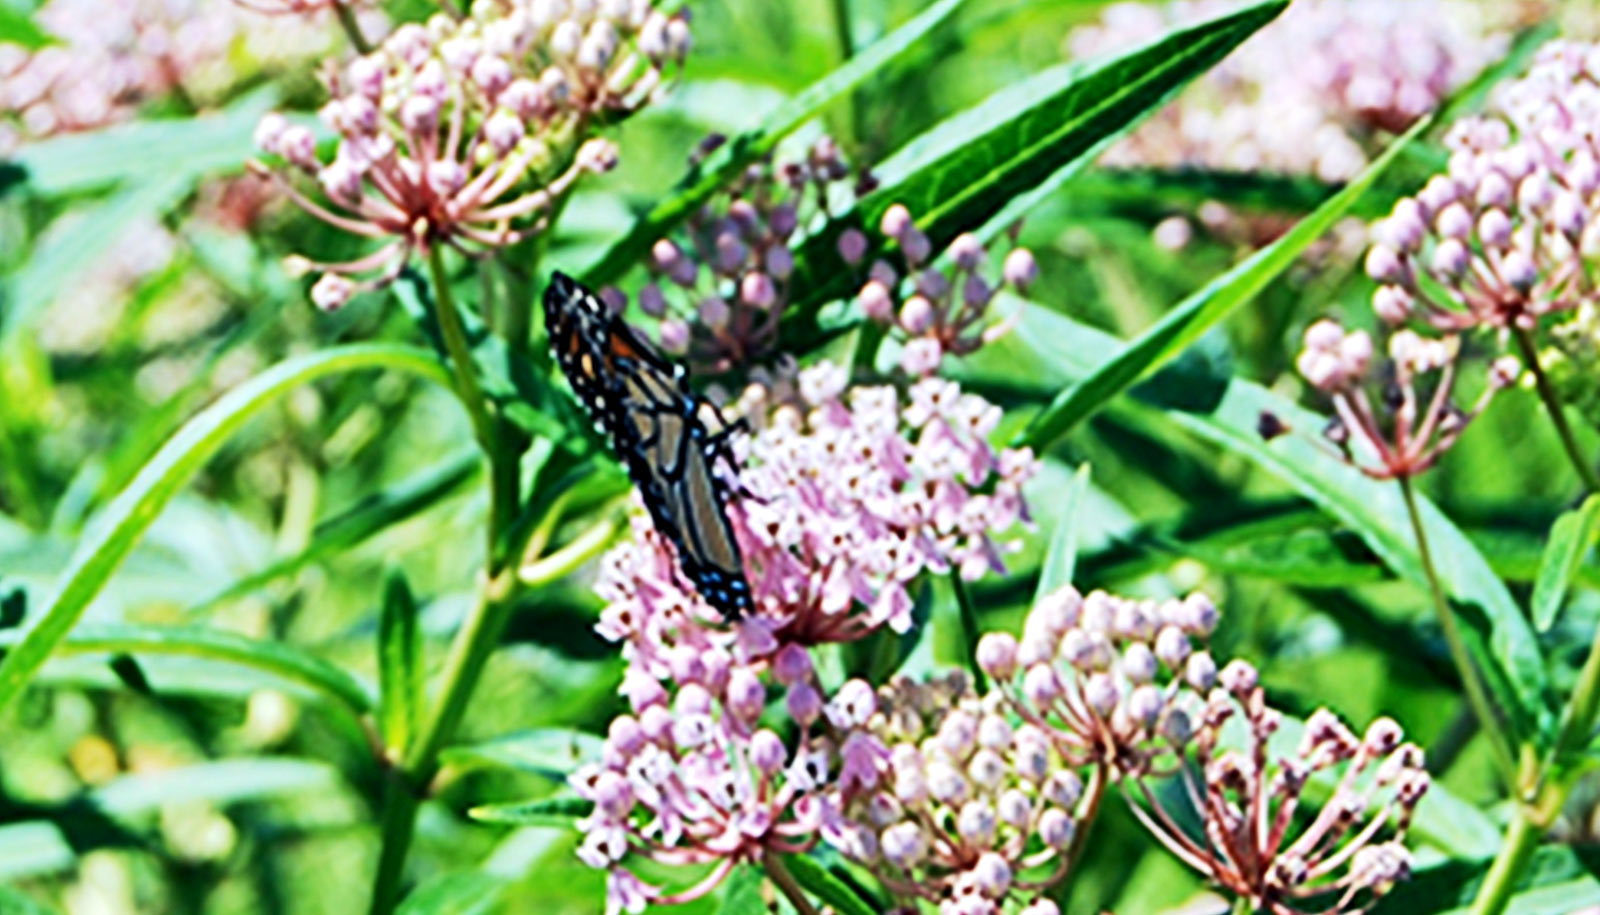 Monarchs lay more eggs where milkweed isn't alone - Futurity